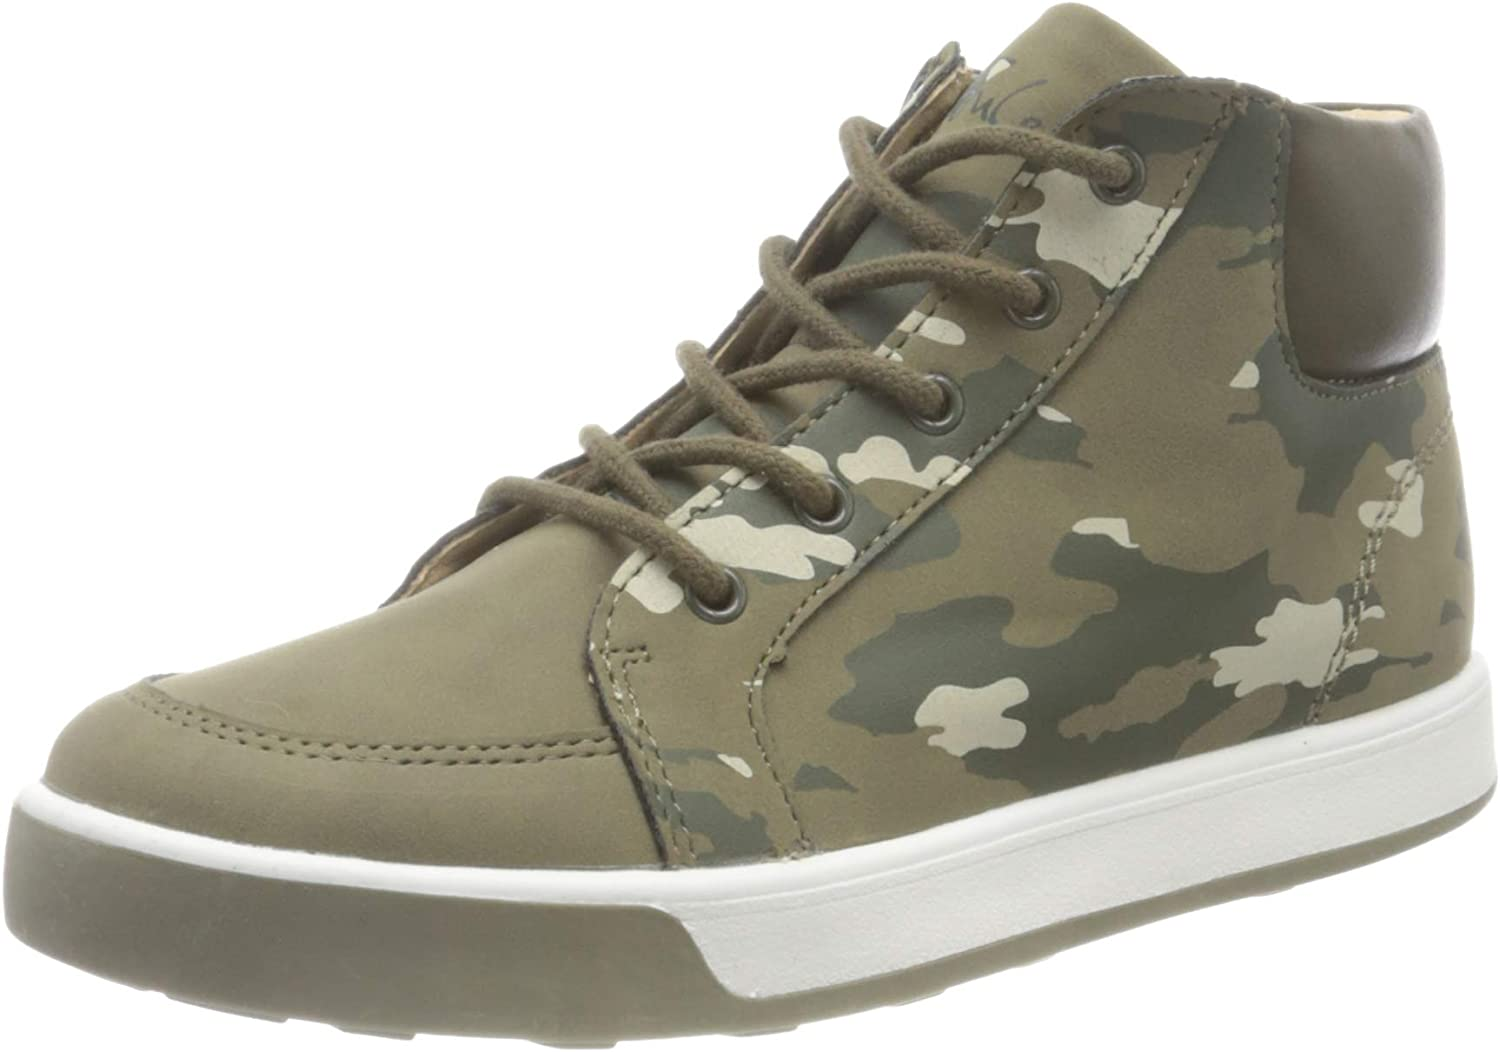 Joules Unisex-Child High Top Sneakers